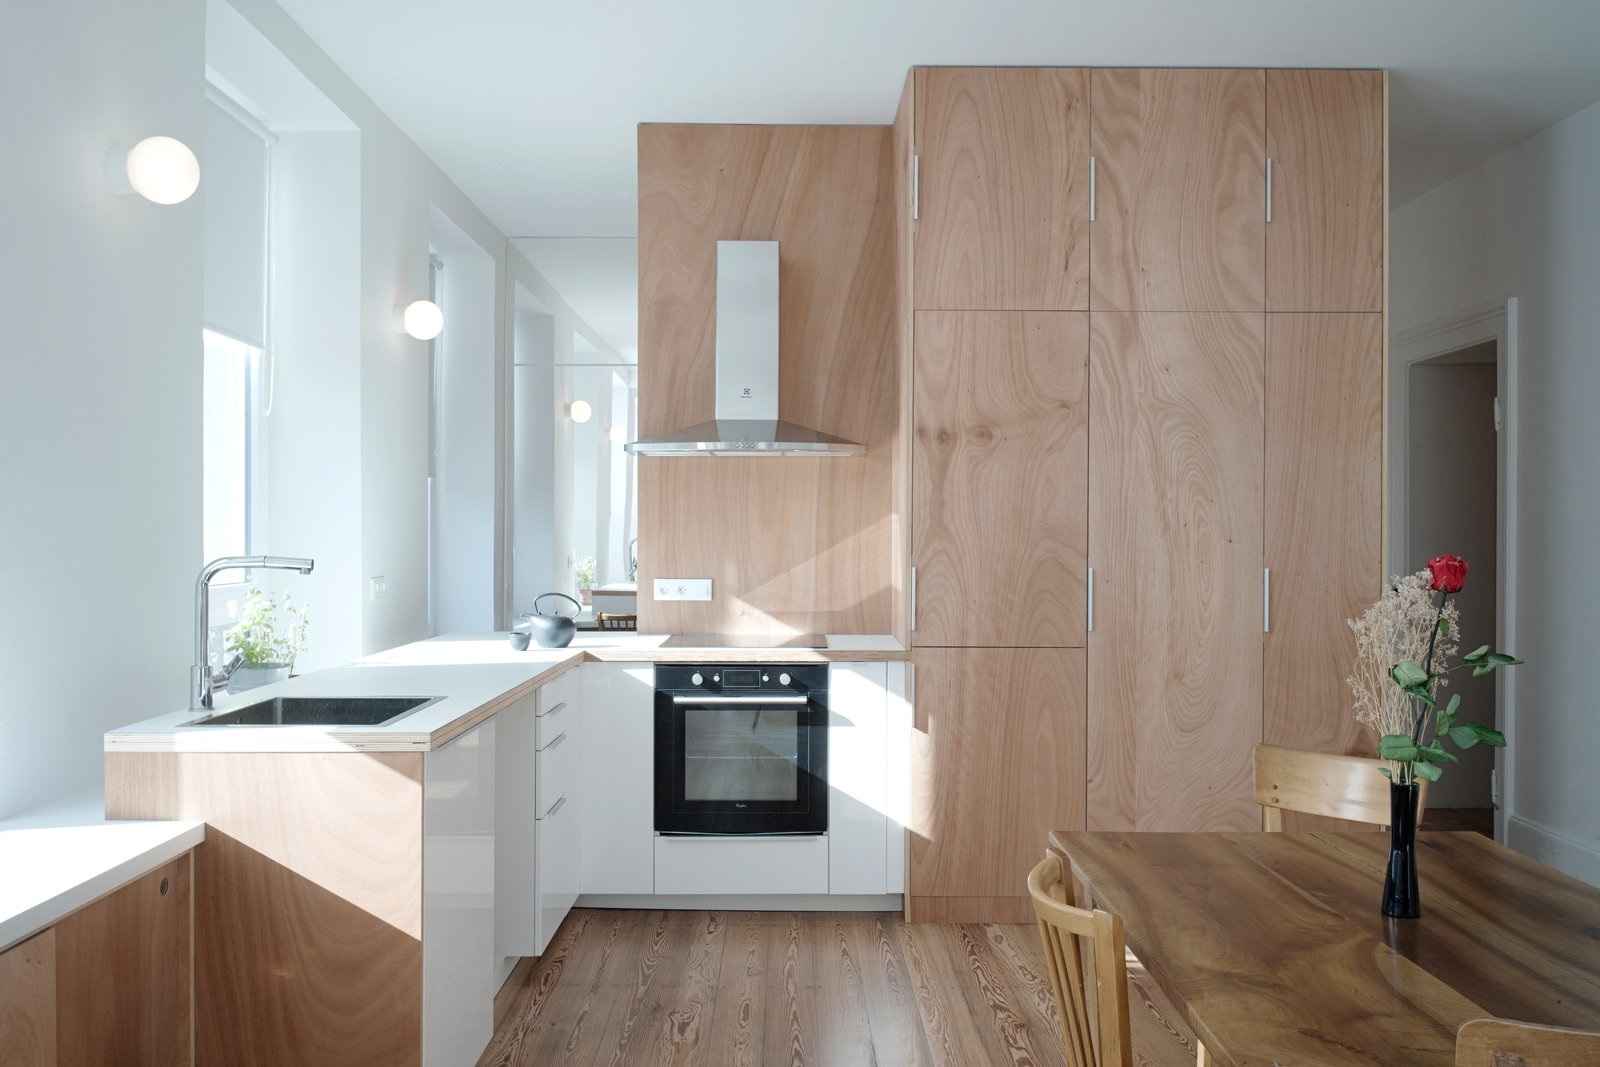 Kitchen, Medium Hardwood, Wood, Wood, Wall, Refrigerator, and Cooktops the kitchen is at the center of the living space  Best Kitchen Wood Refrigerator Wall Cooktops Wood Photos from Corner Apartment in Strasbourg, France